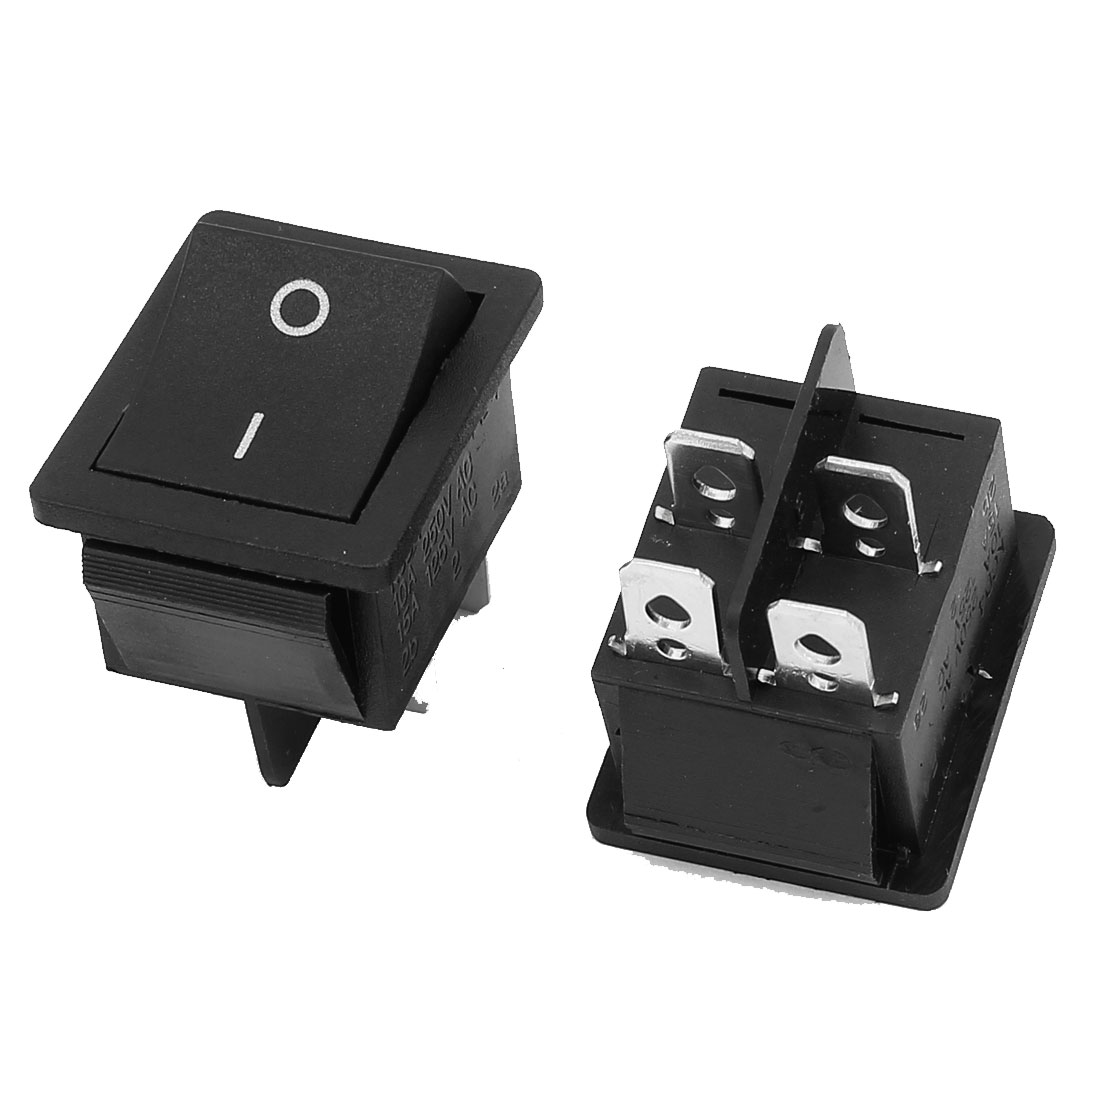 2 Pcs 2 Position On-Off DPST Boat Rocker Switch 10A 250VAC 15A 125VAC